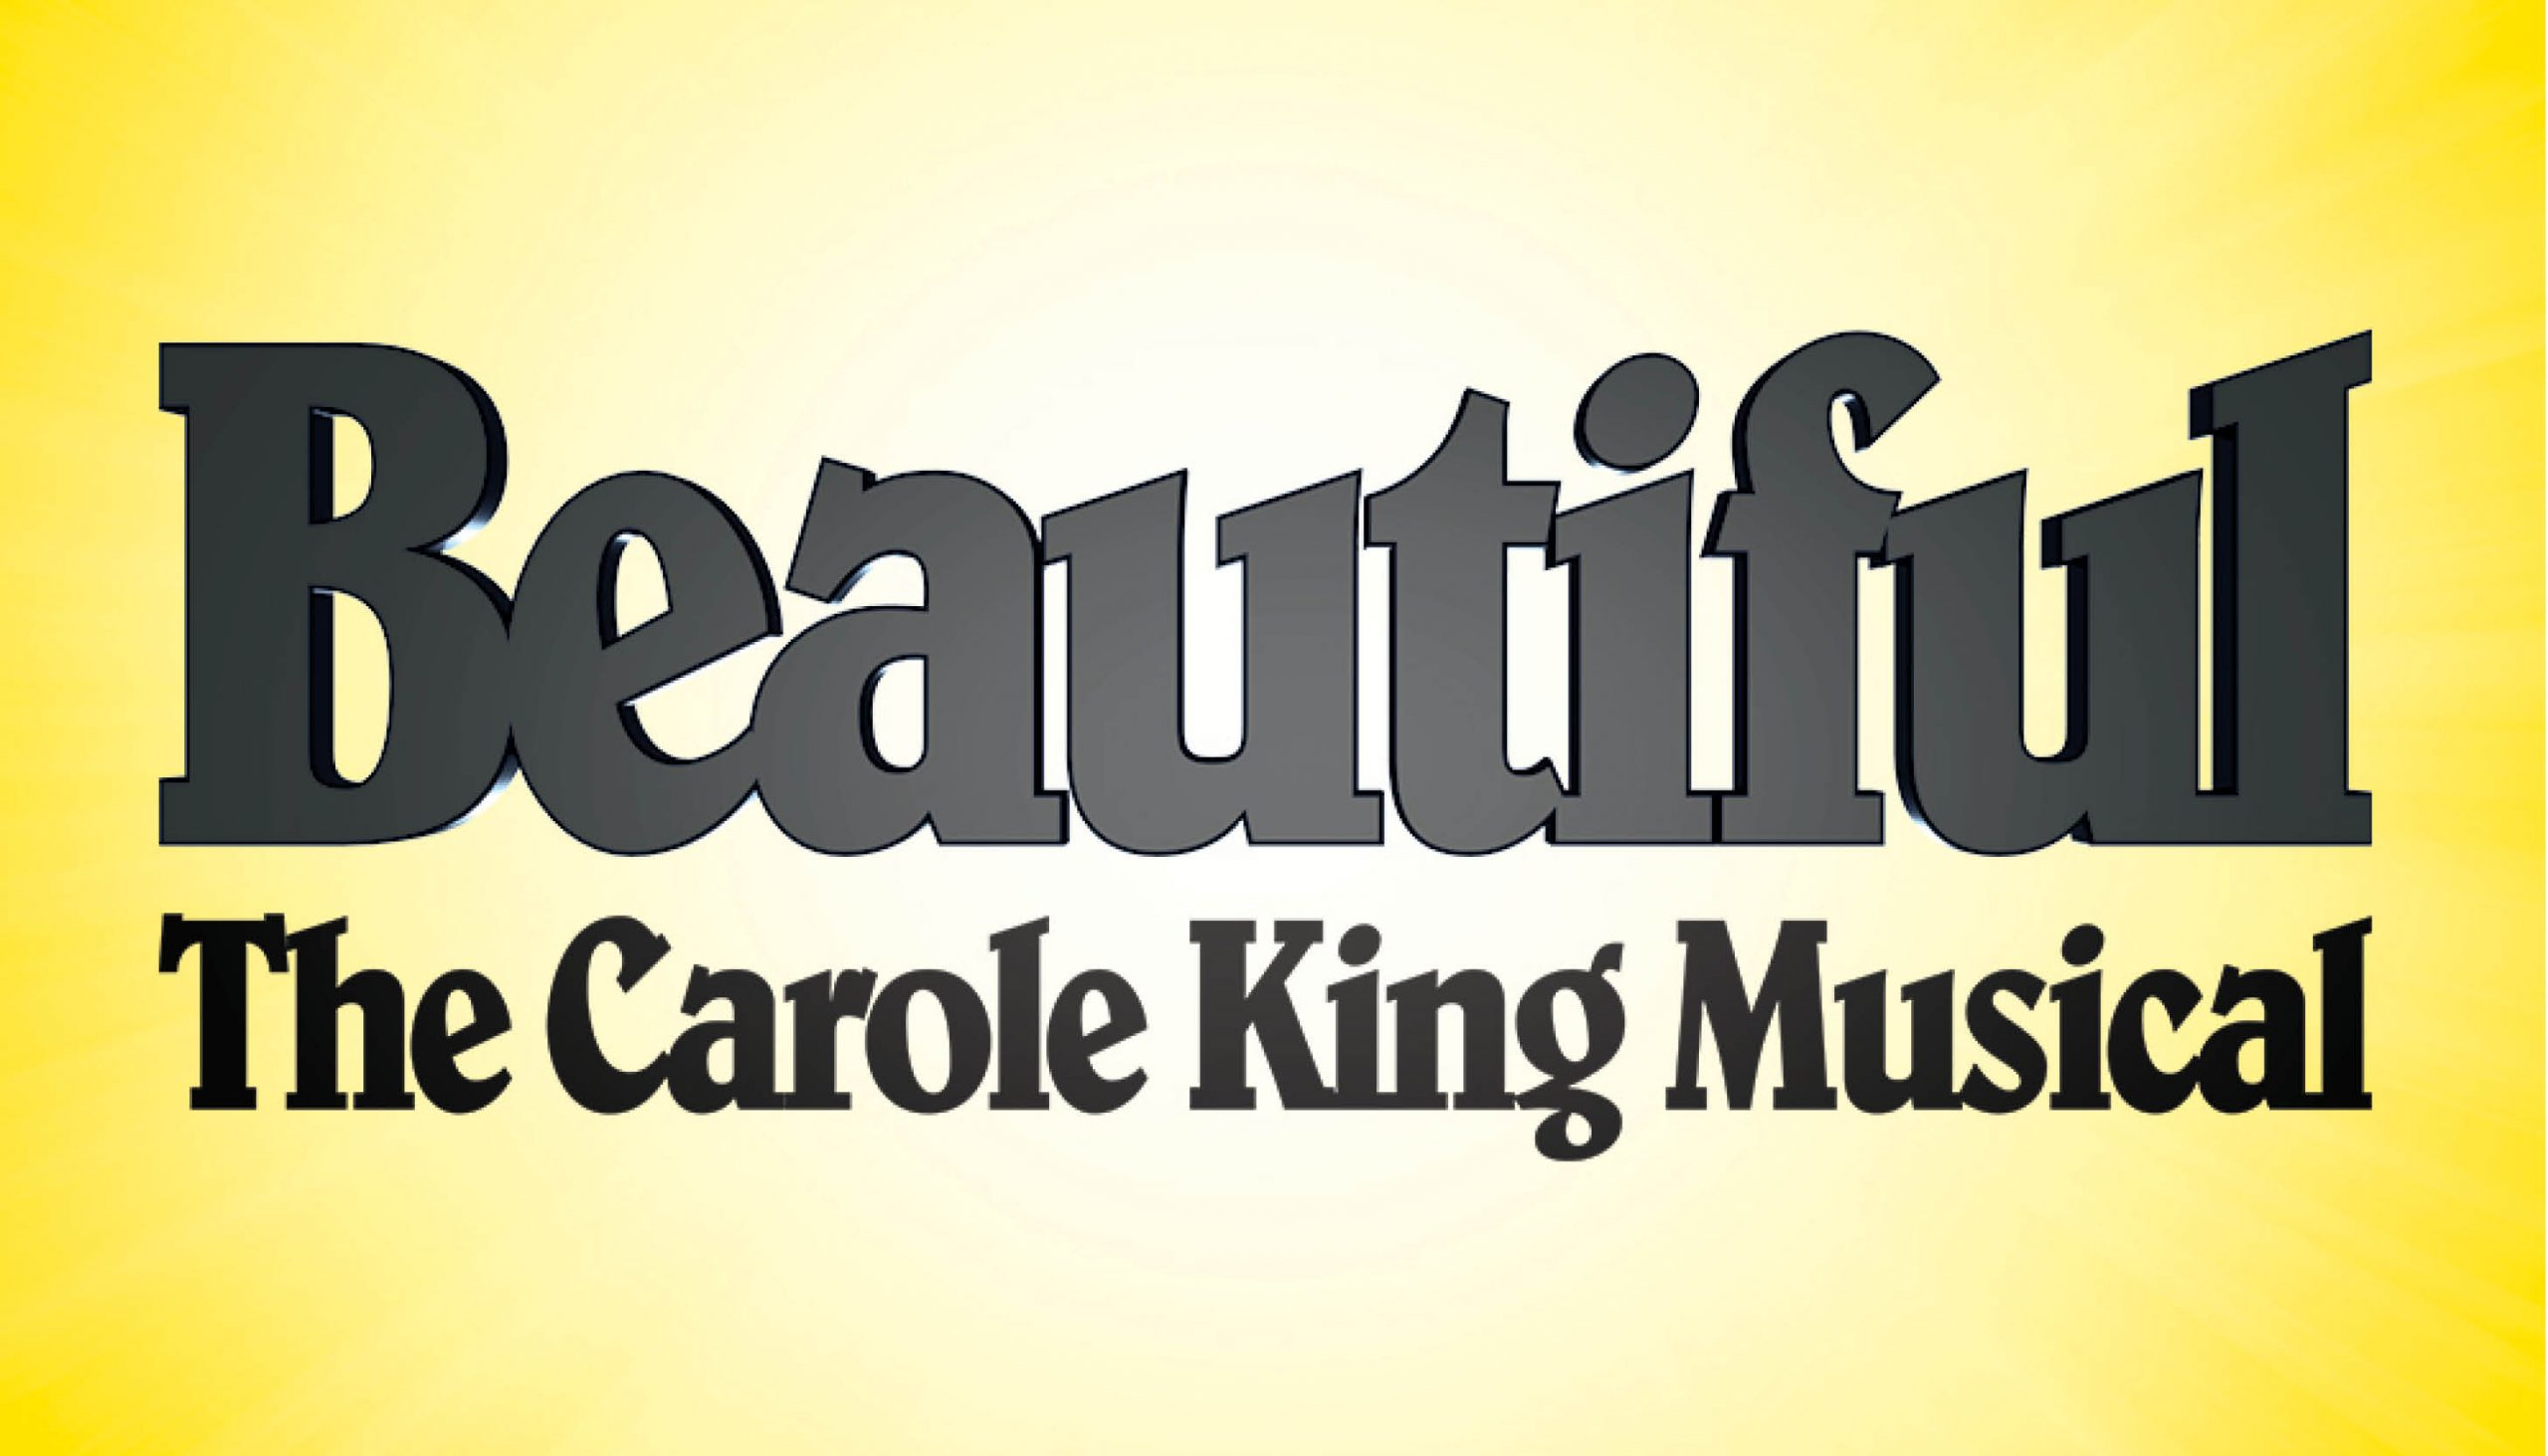 """The title """"Beautiful The Carole King Musical"""" with light coming from behind"""